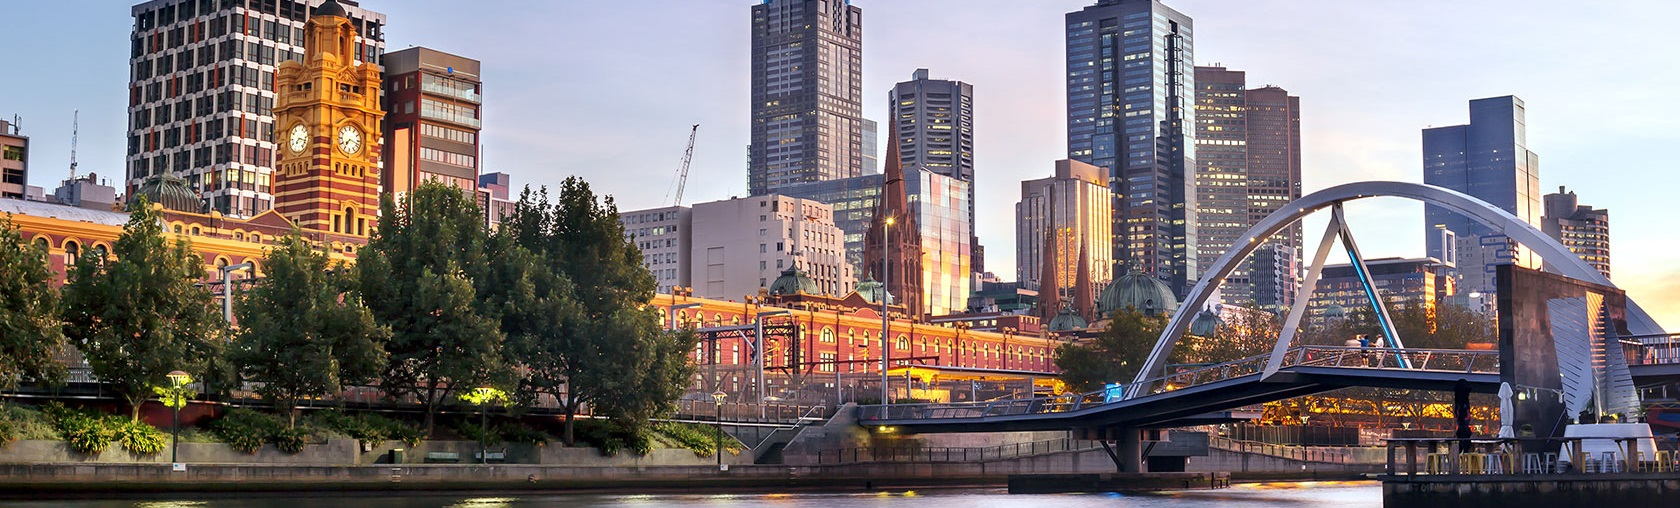 HxGN Local - HDS User Conference Melbourne